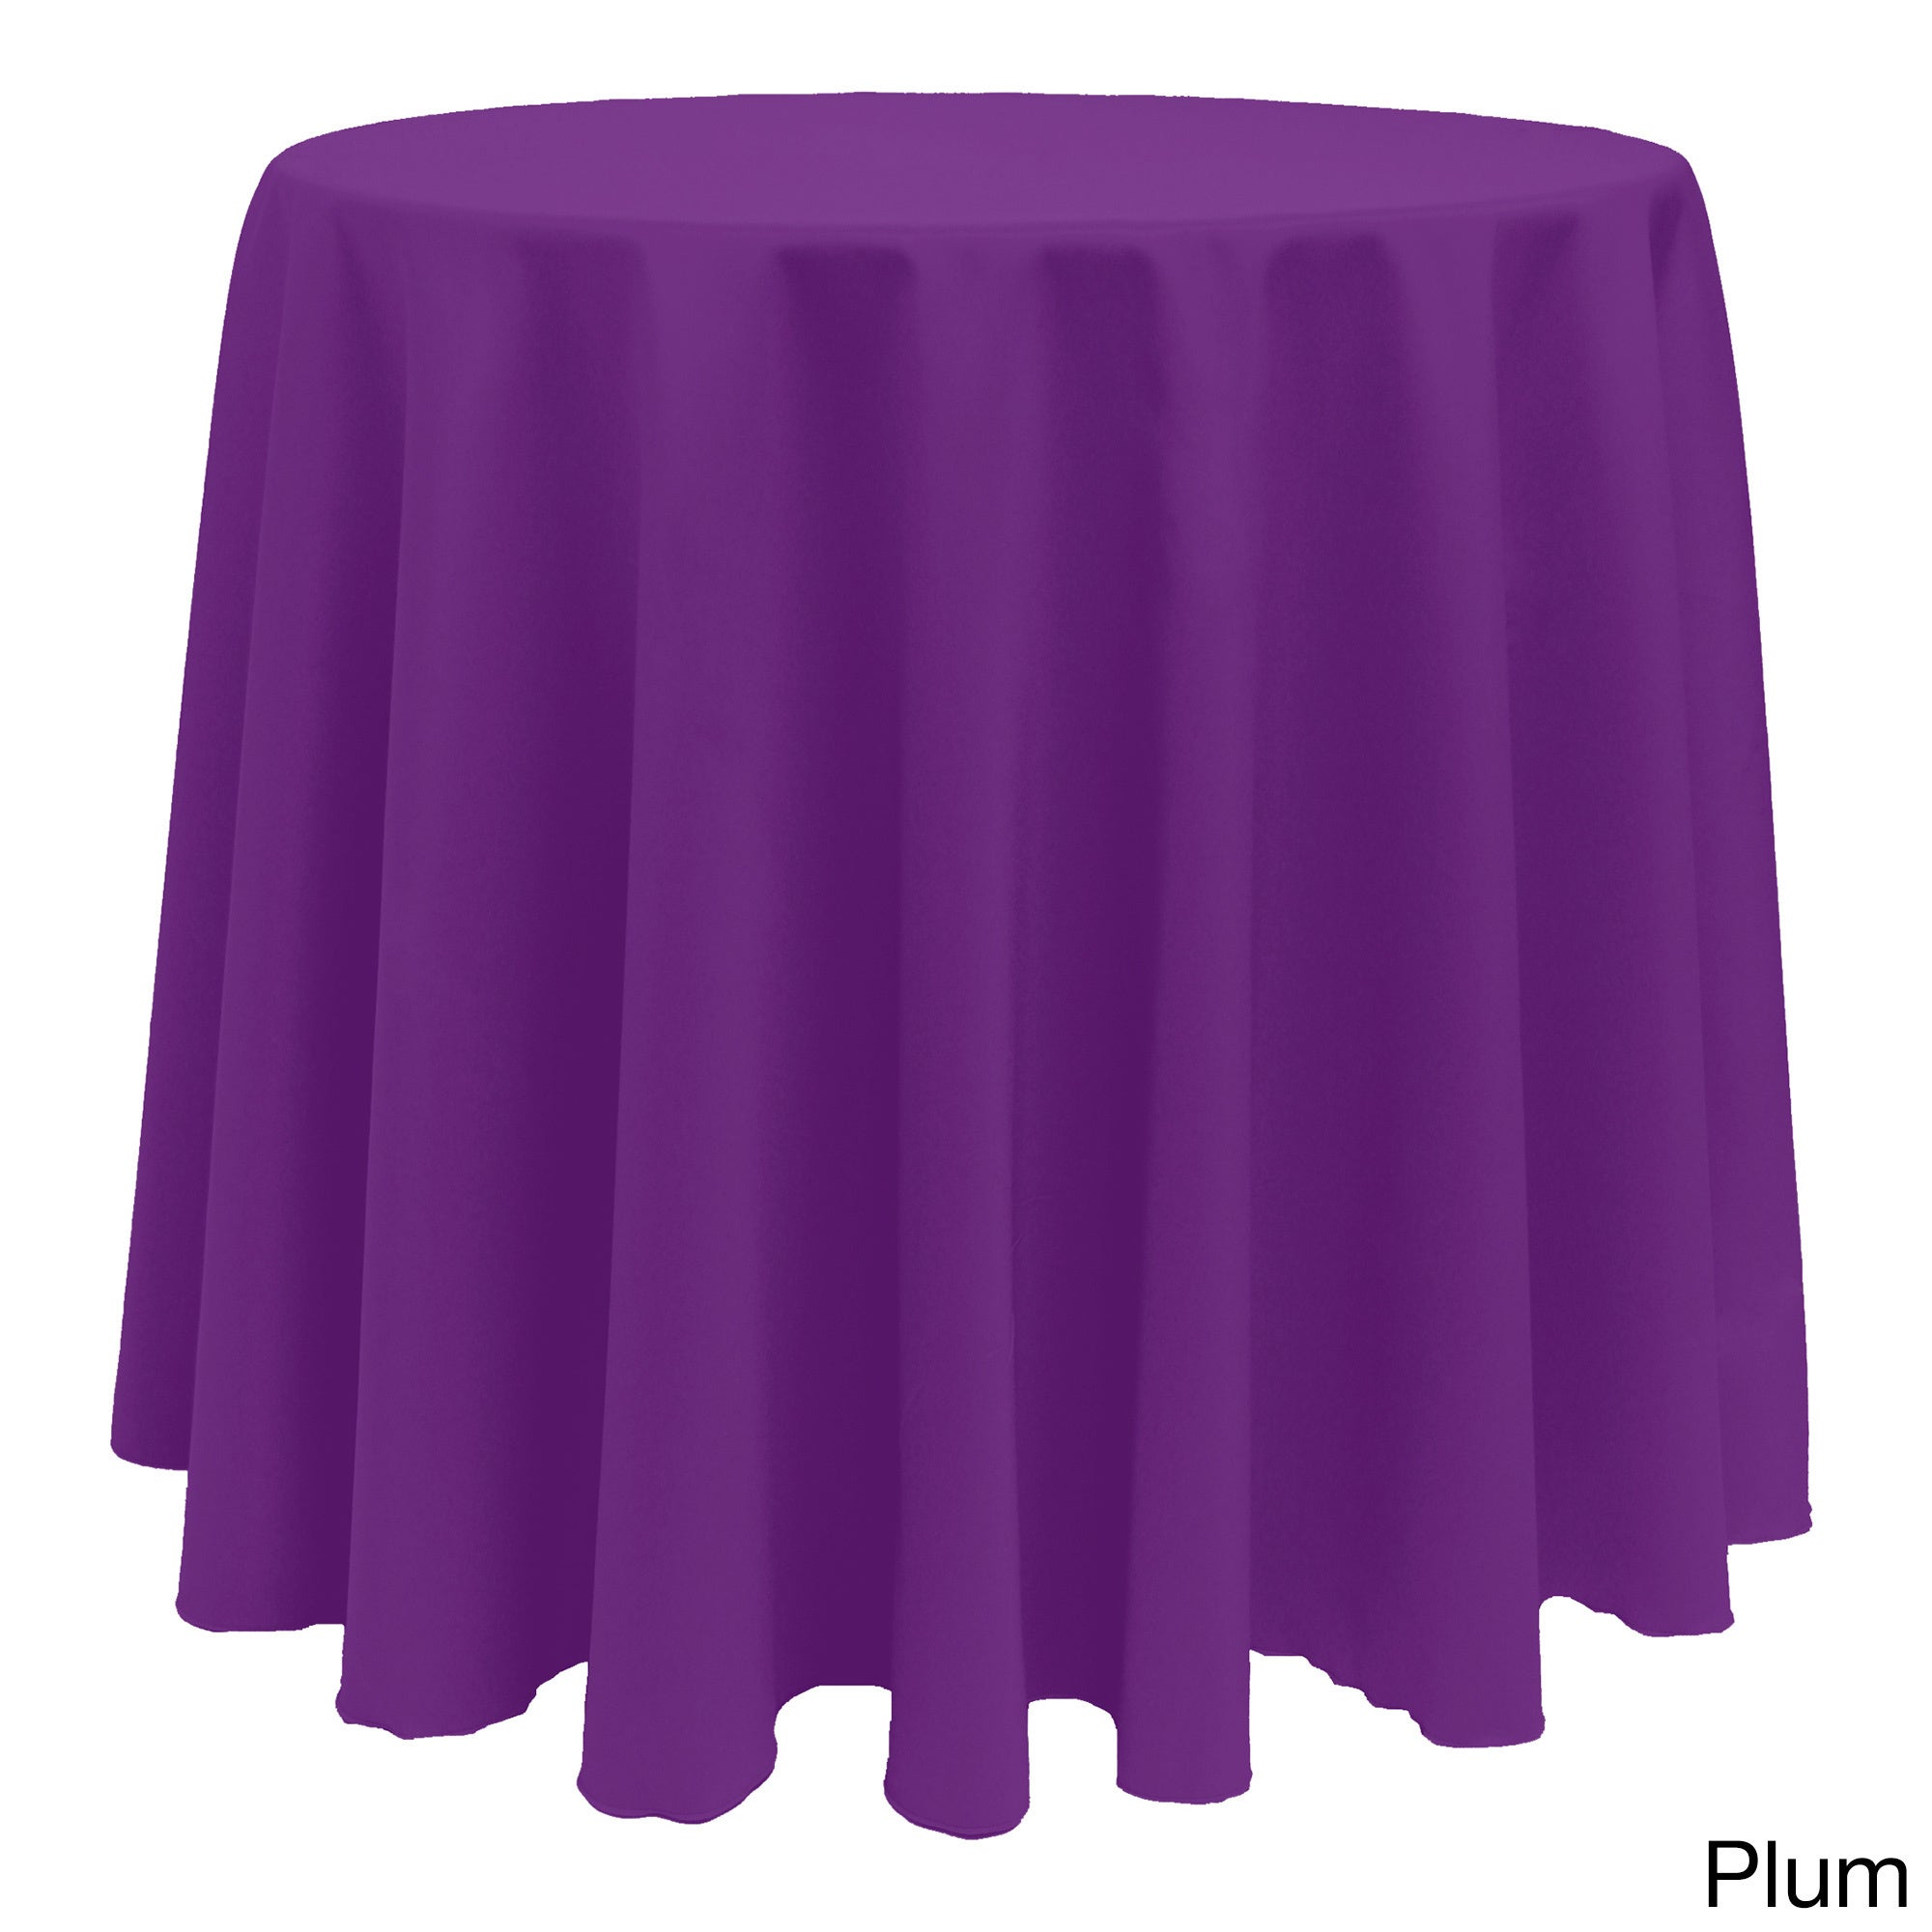 Solid Color 132 Inches Round Colorful Tablecloth   Free Shipping Today    Overstock   17343845